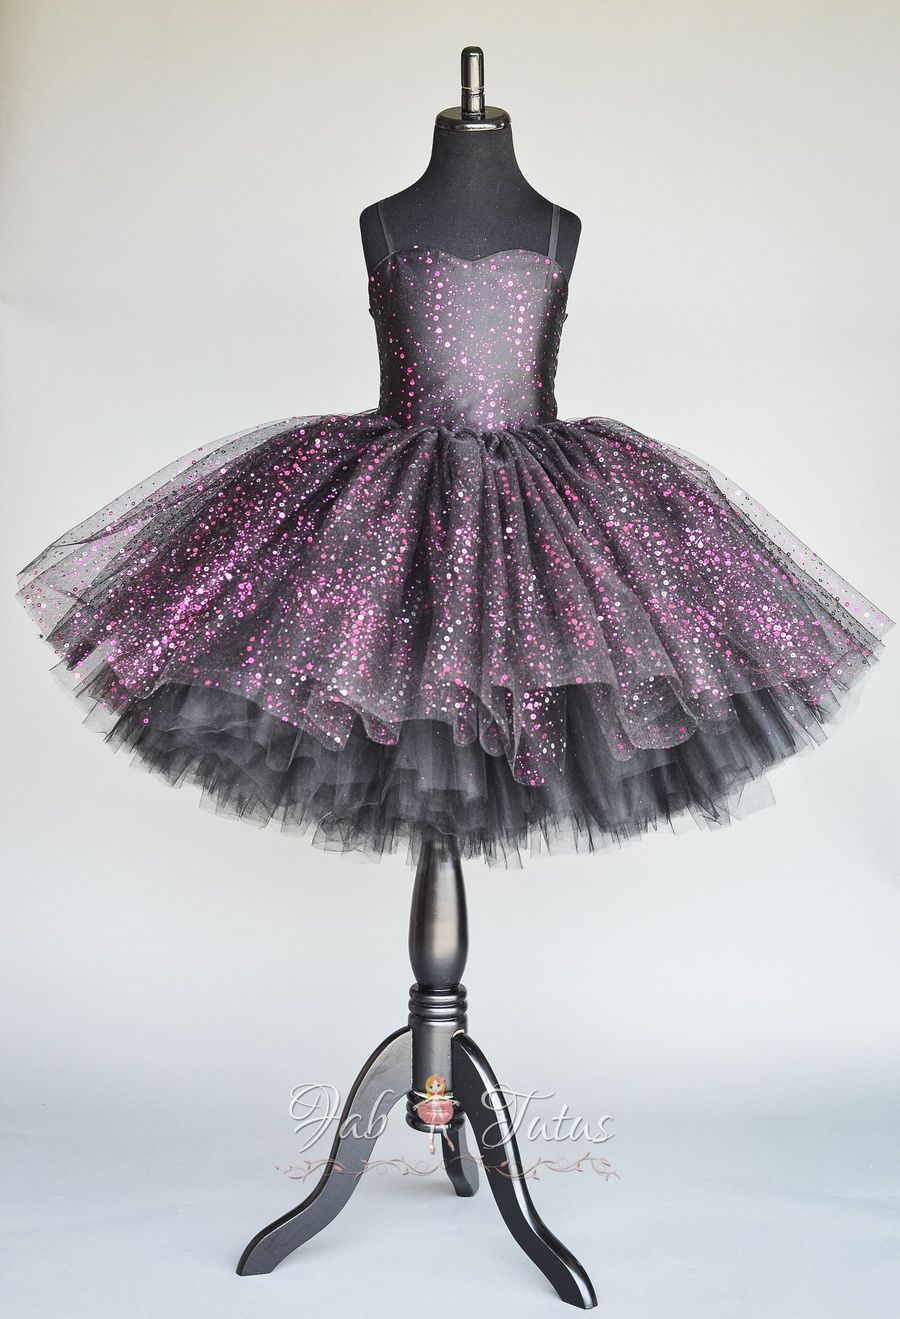 FabTutus   Products   Flower Girl Dress   \